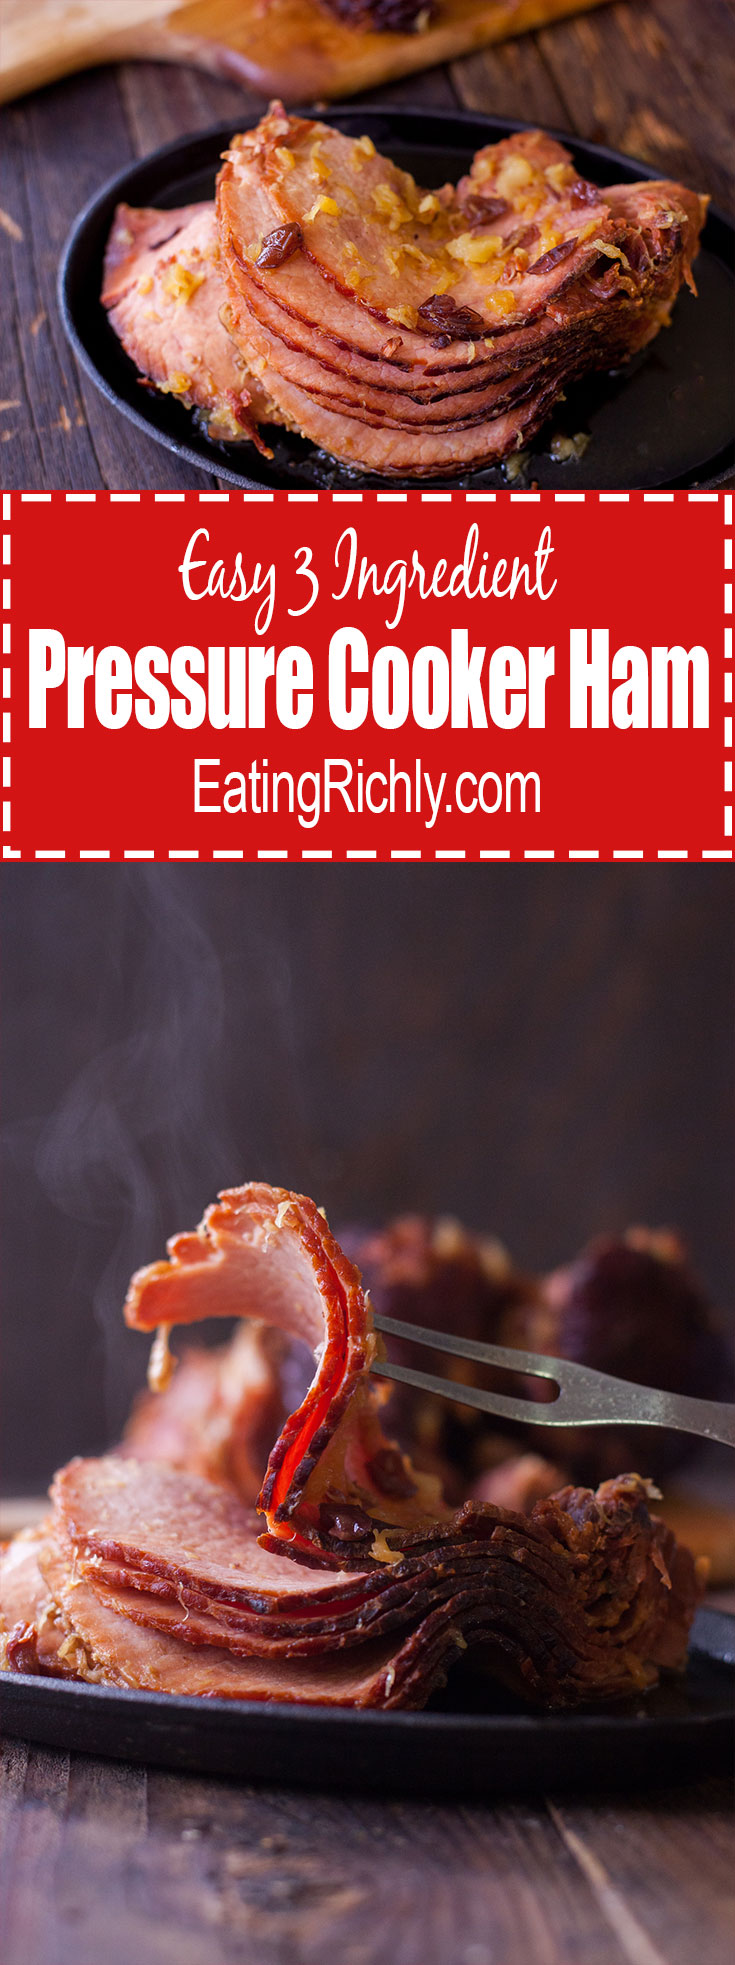 This simple pressure cooker ham has just 3 easy ingredients and can be made in a pressure cooker or slow cooker for stress free holiday entertaining. From EatingRichly.com